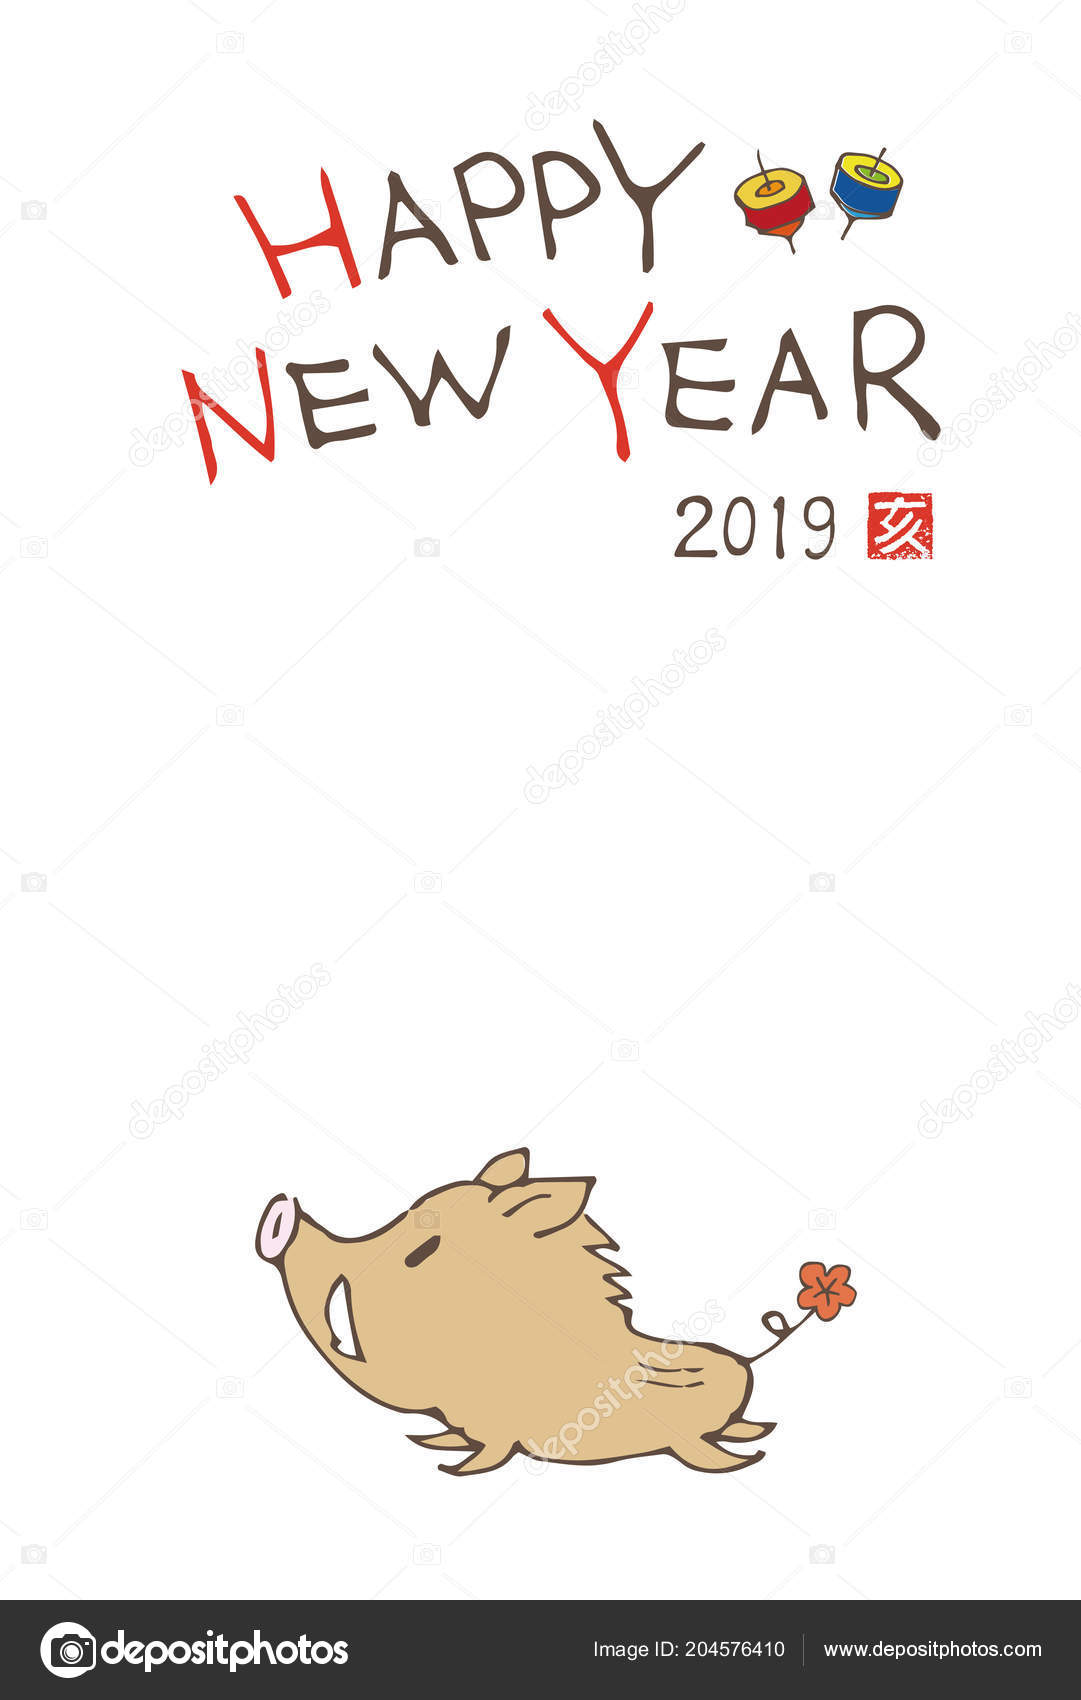 New year greeting japanese words year 2019 stock vector new year greeting japanese words year 2019 stock vector m4hsunfo